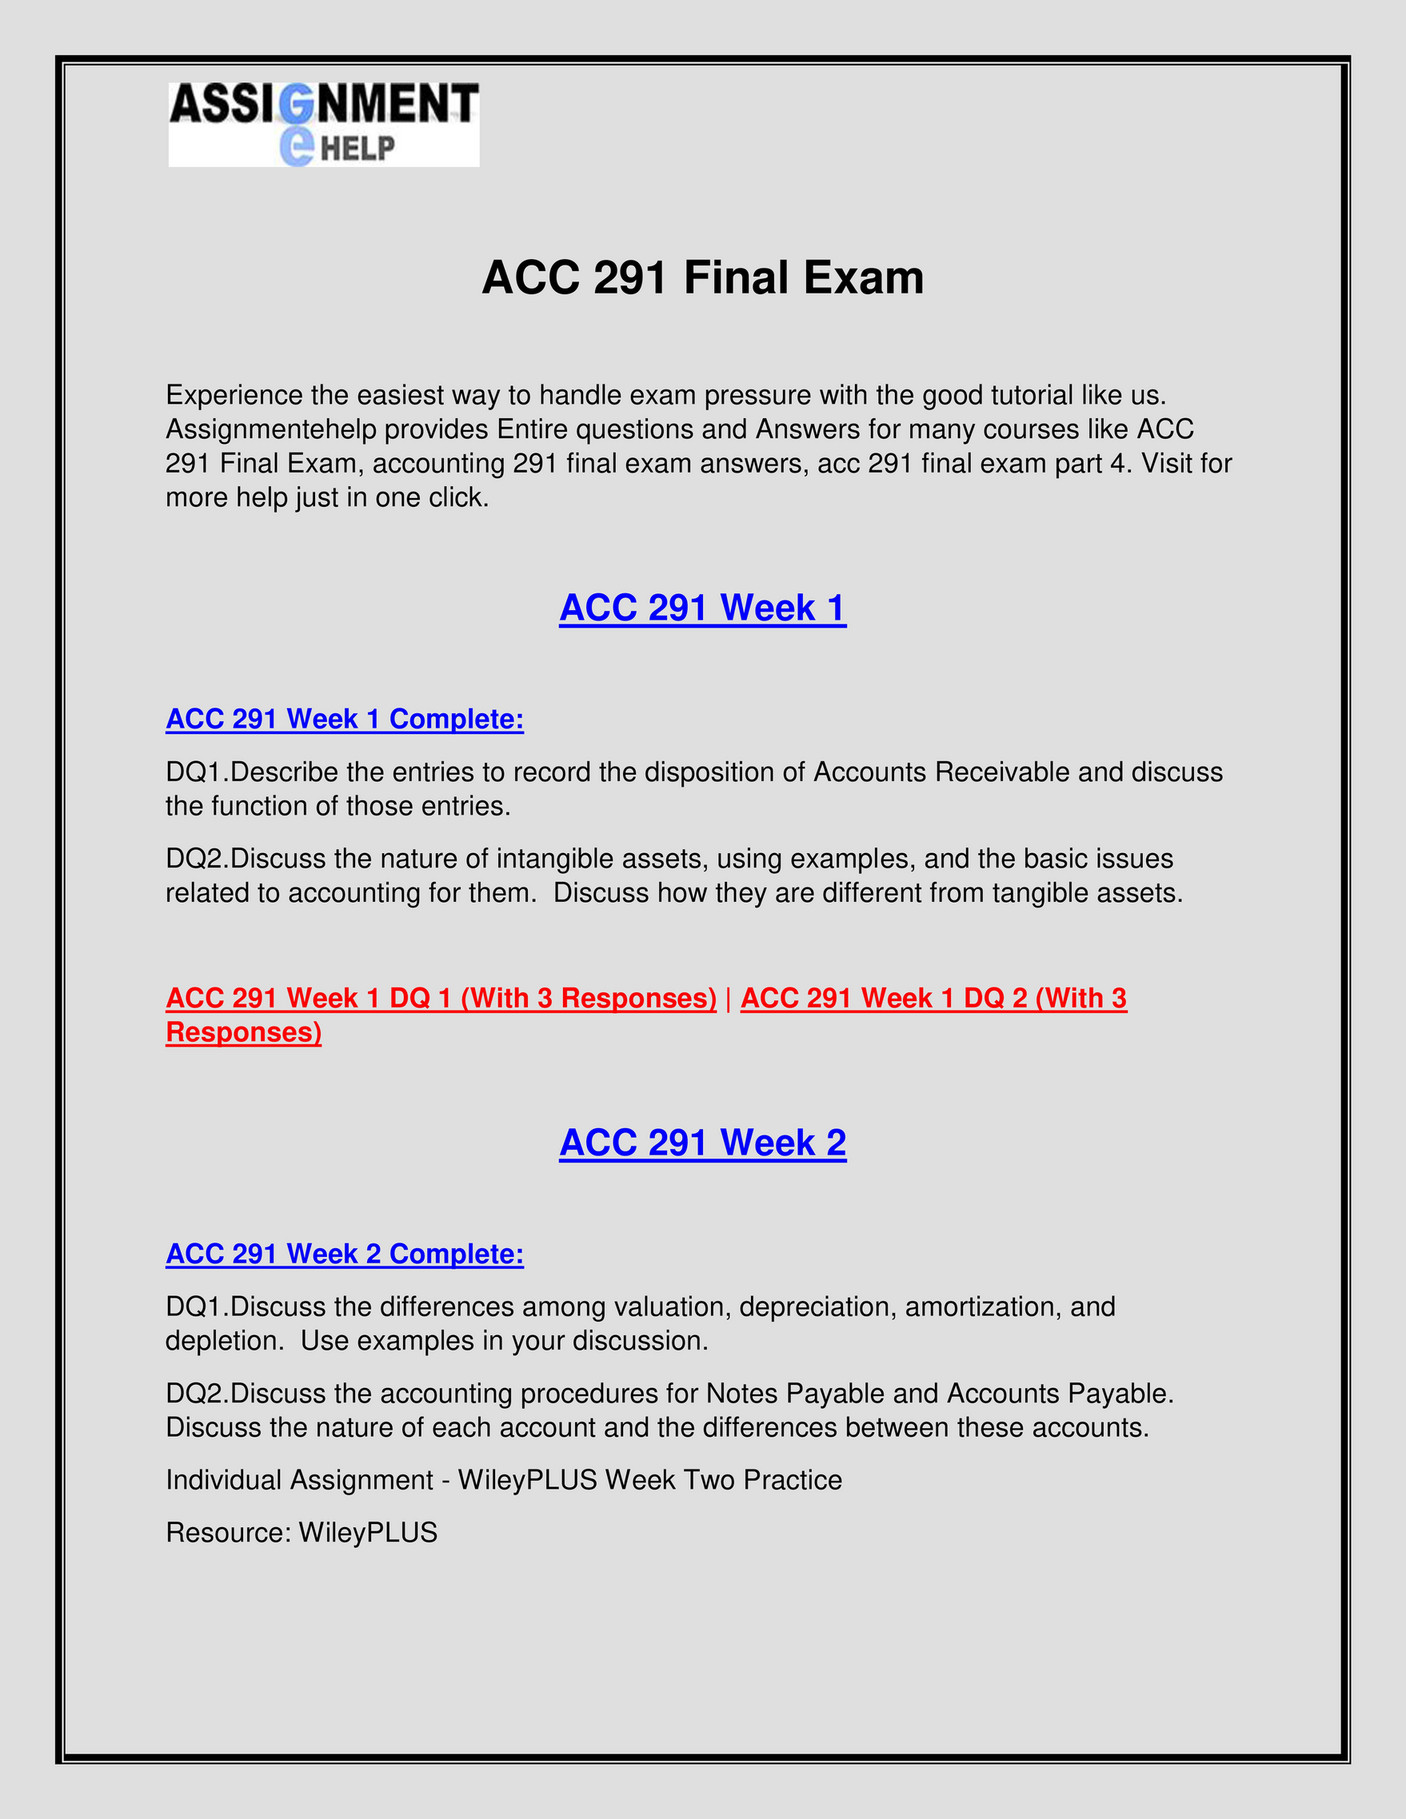 Assignment E Help - ACC 291 Final Exam - Page 2-3 - Created